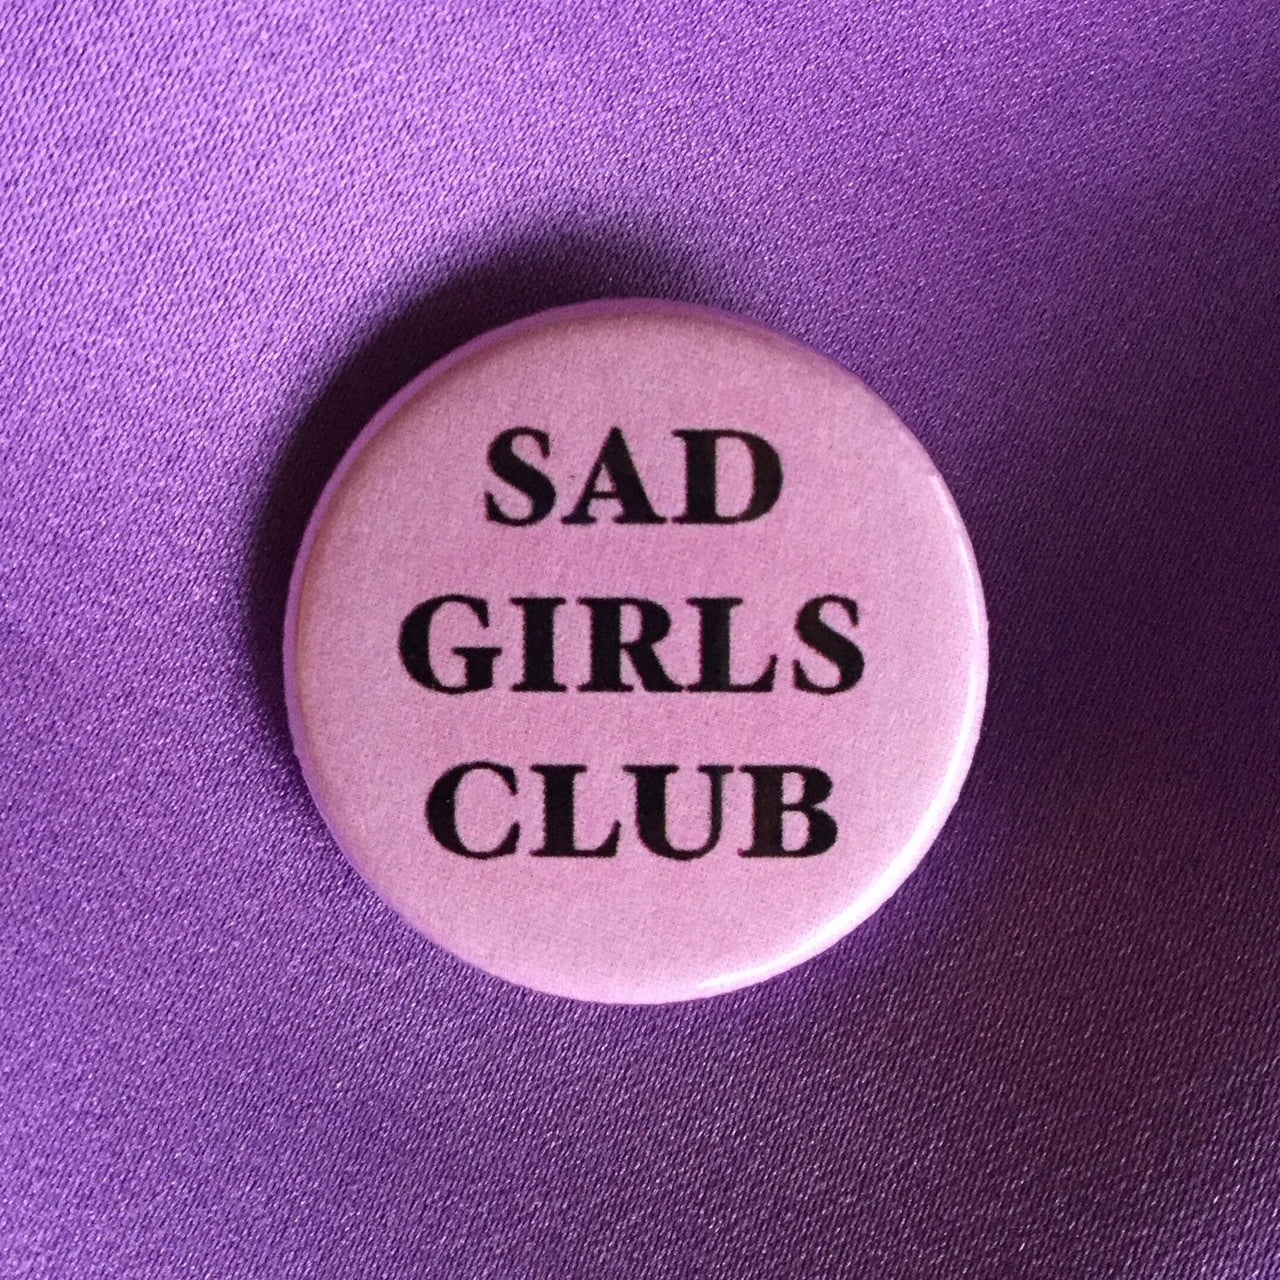 Sad girls club button - Radical Buttons